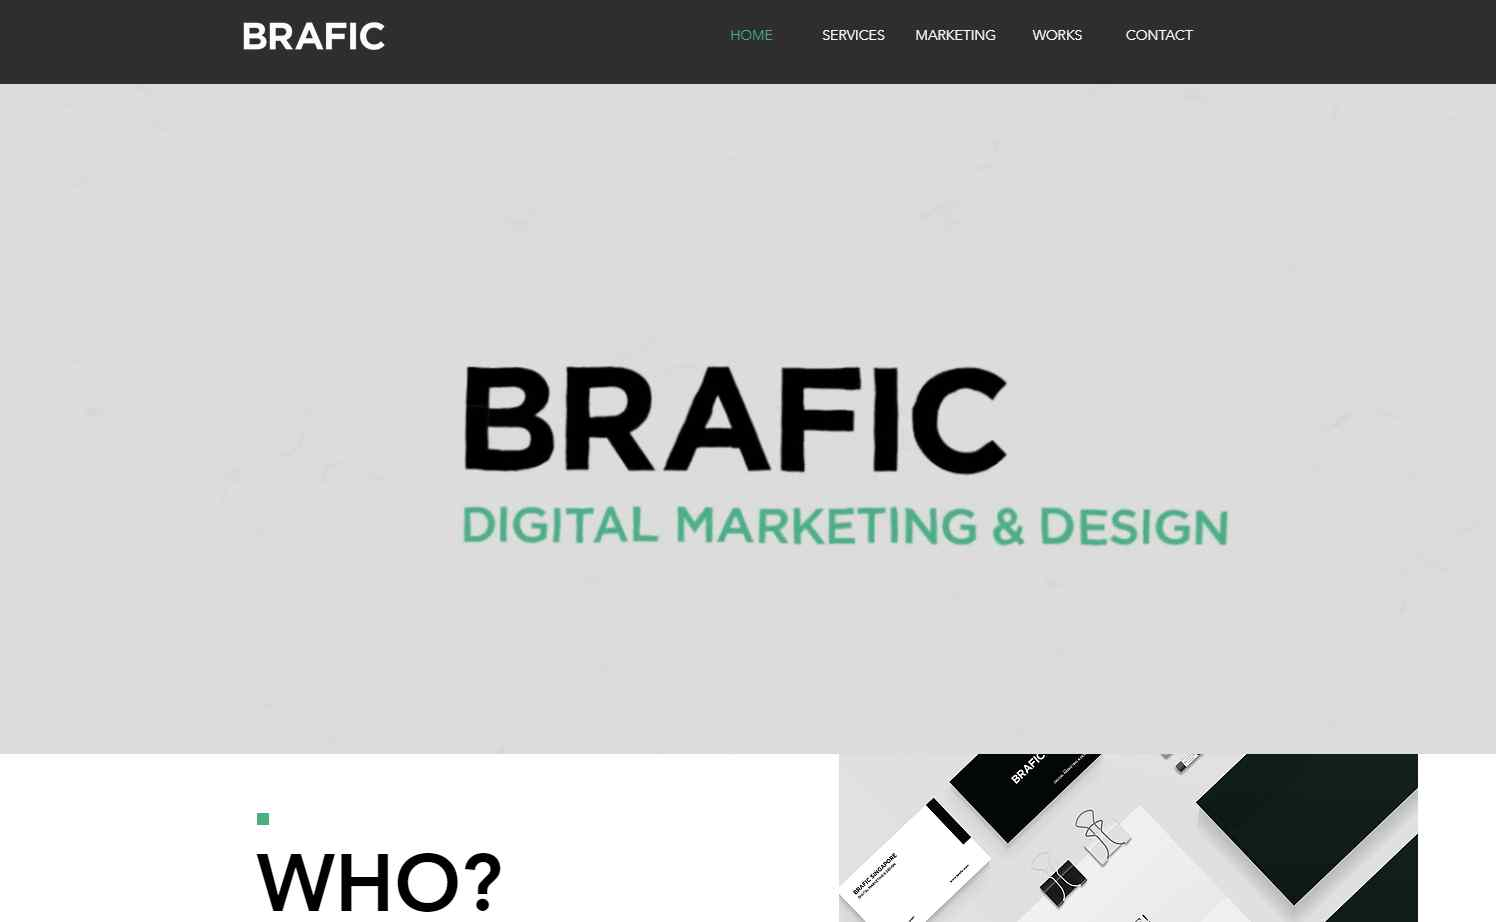 brafic Website Copywriting The Complete Guide